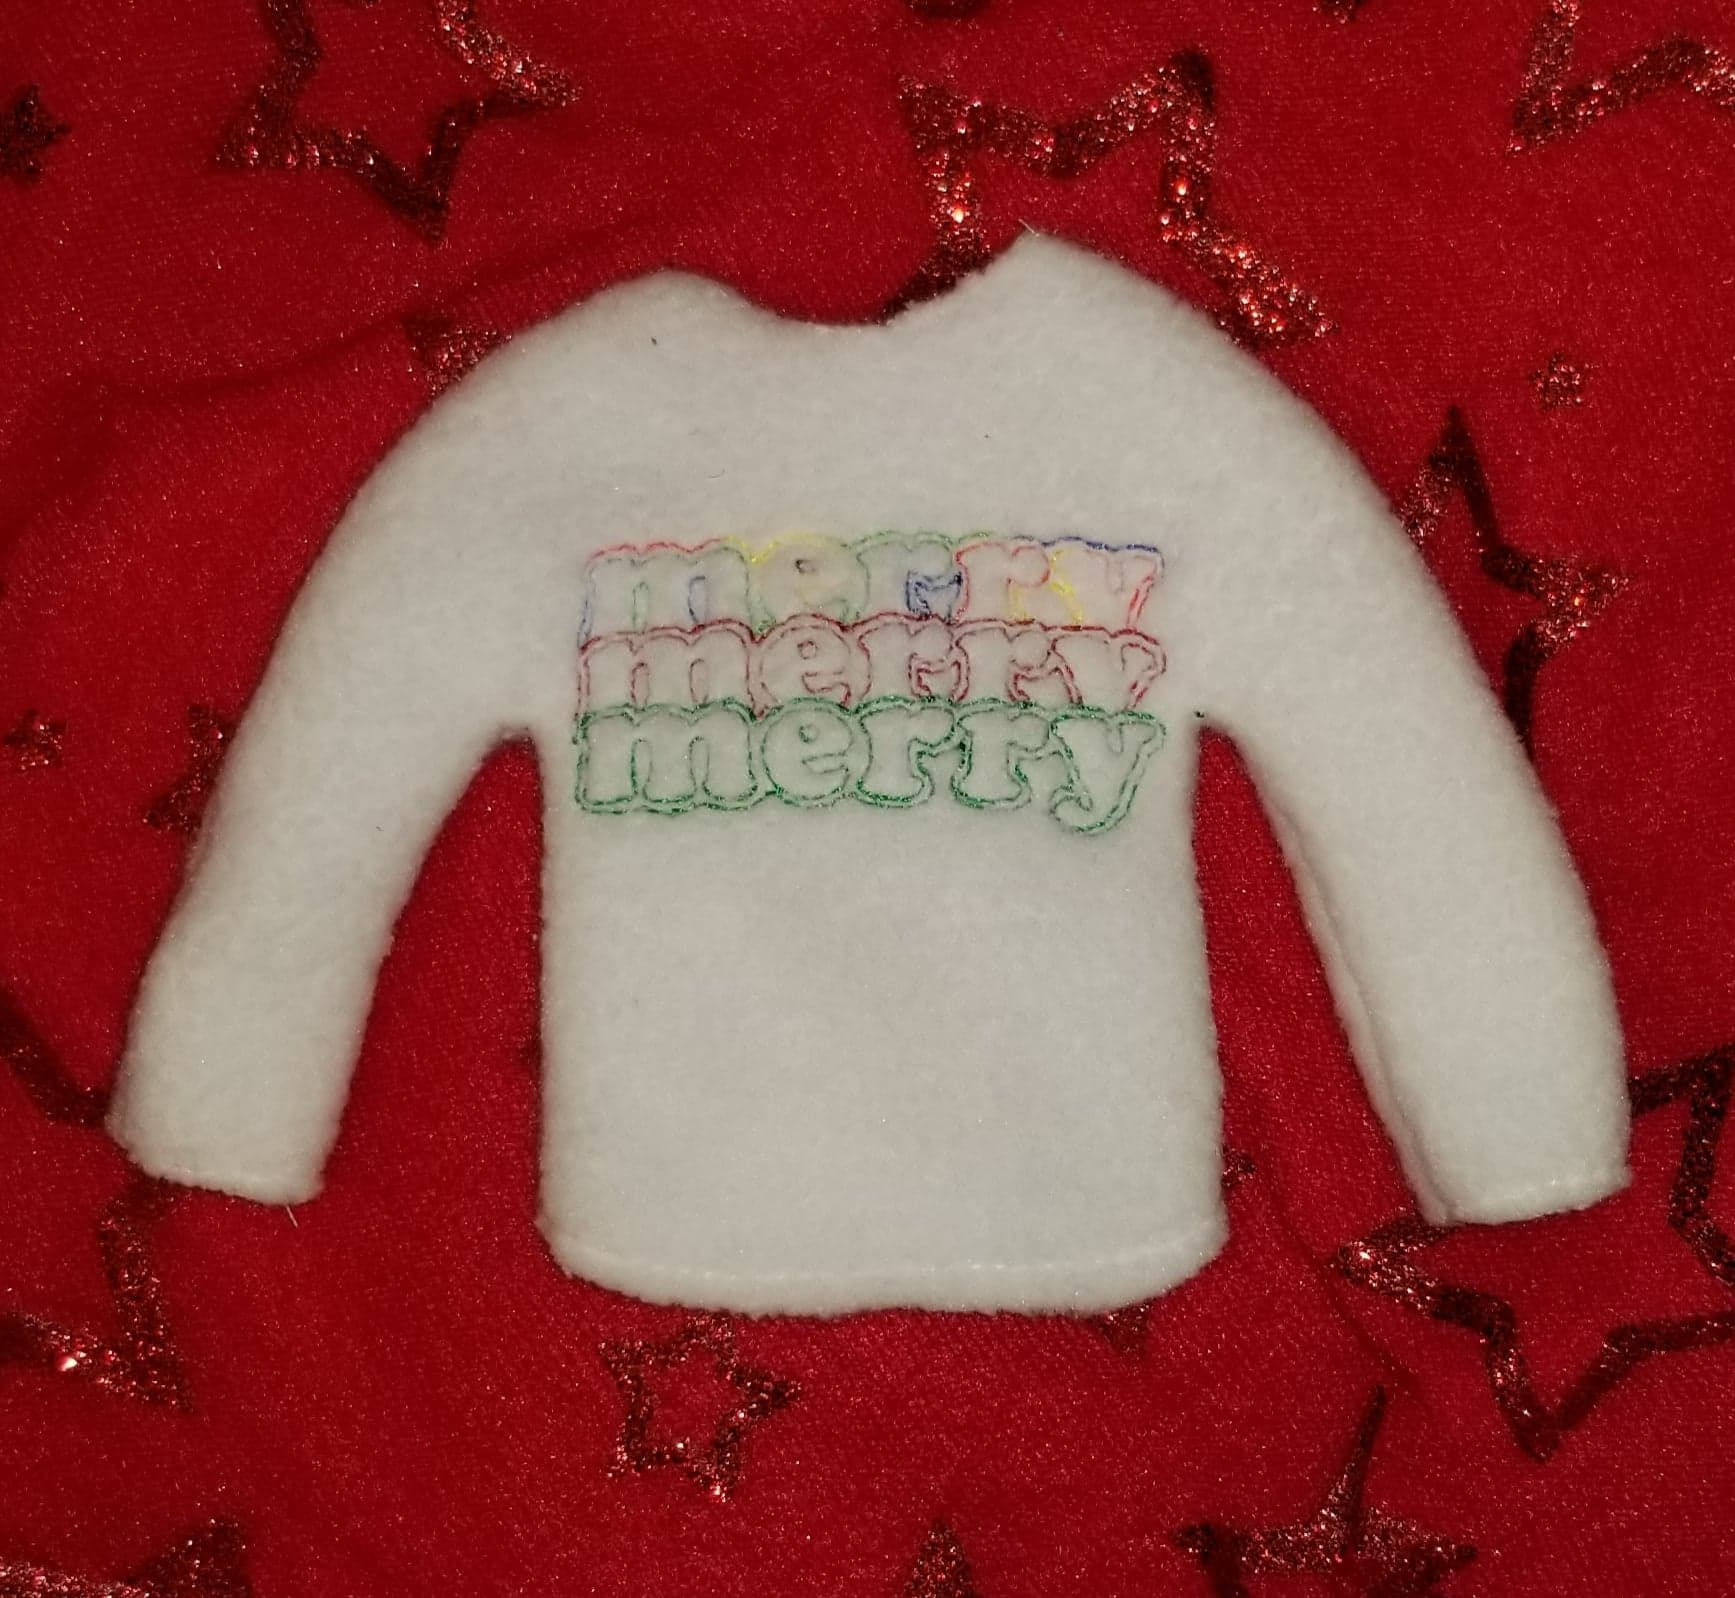 Merry x3 Elf Sweater Embroidery Design